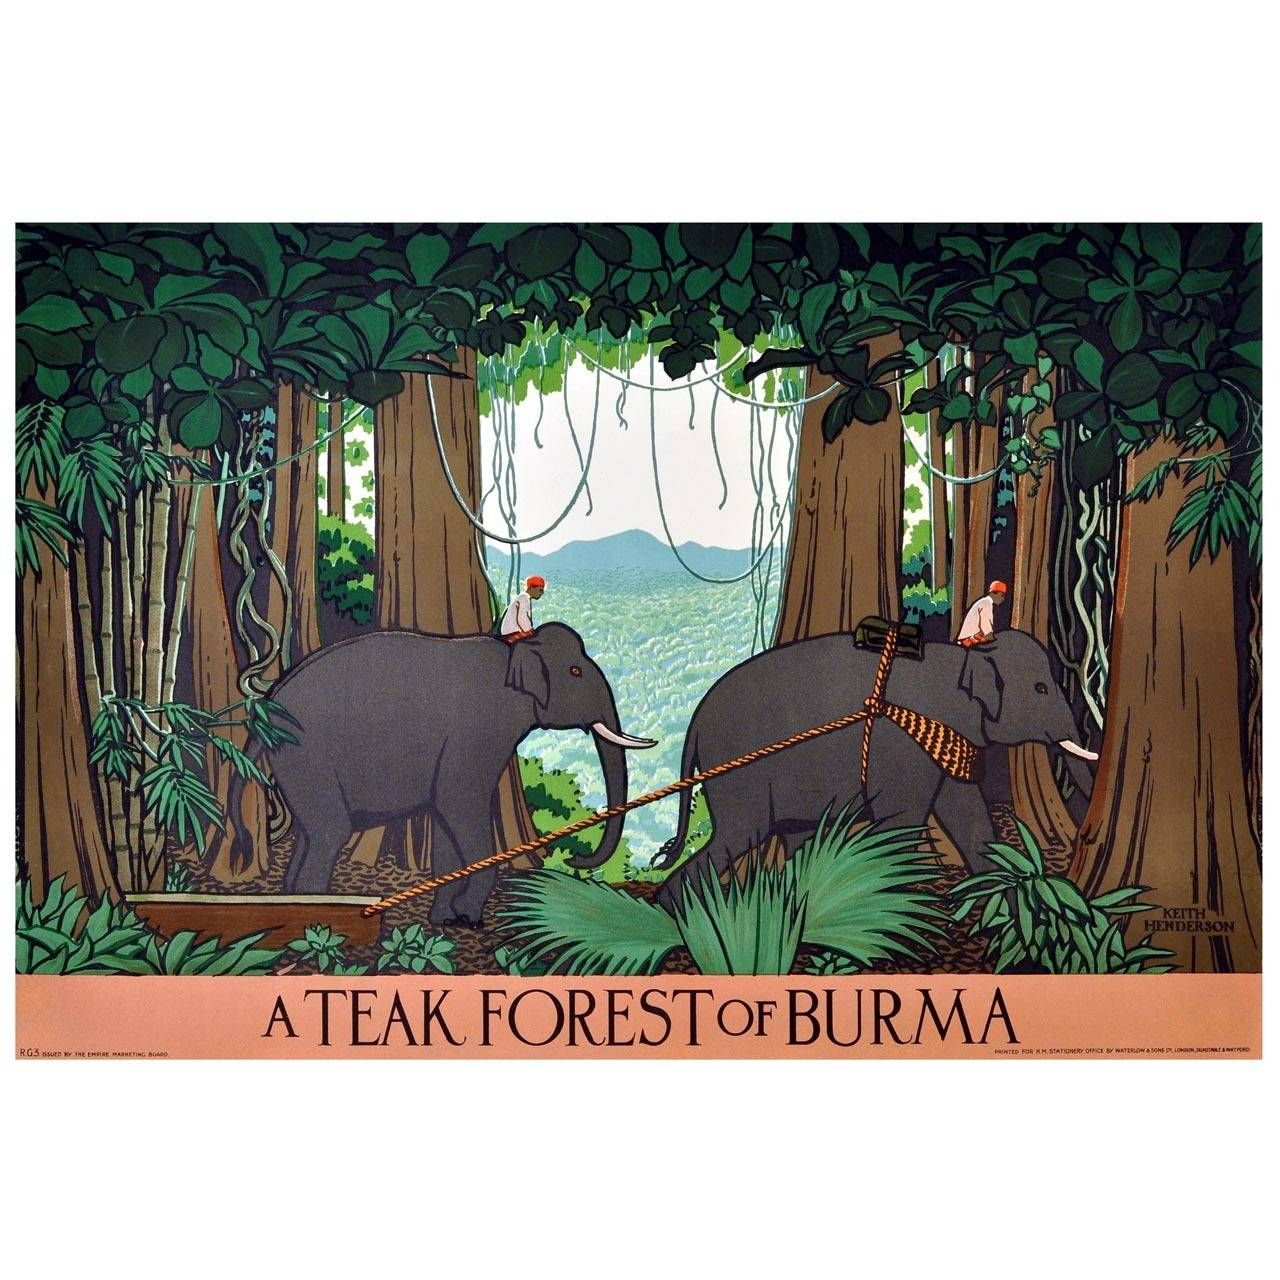 Original 1930s Empire Marketing Board Poster A Teak Forest Of